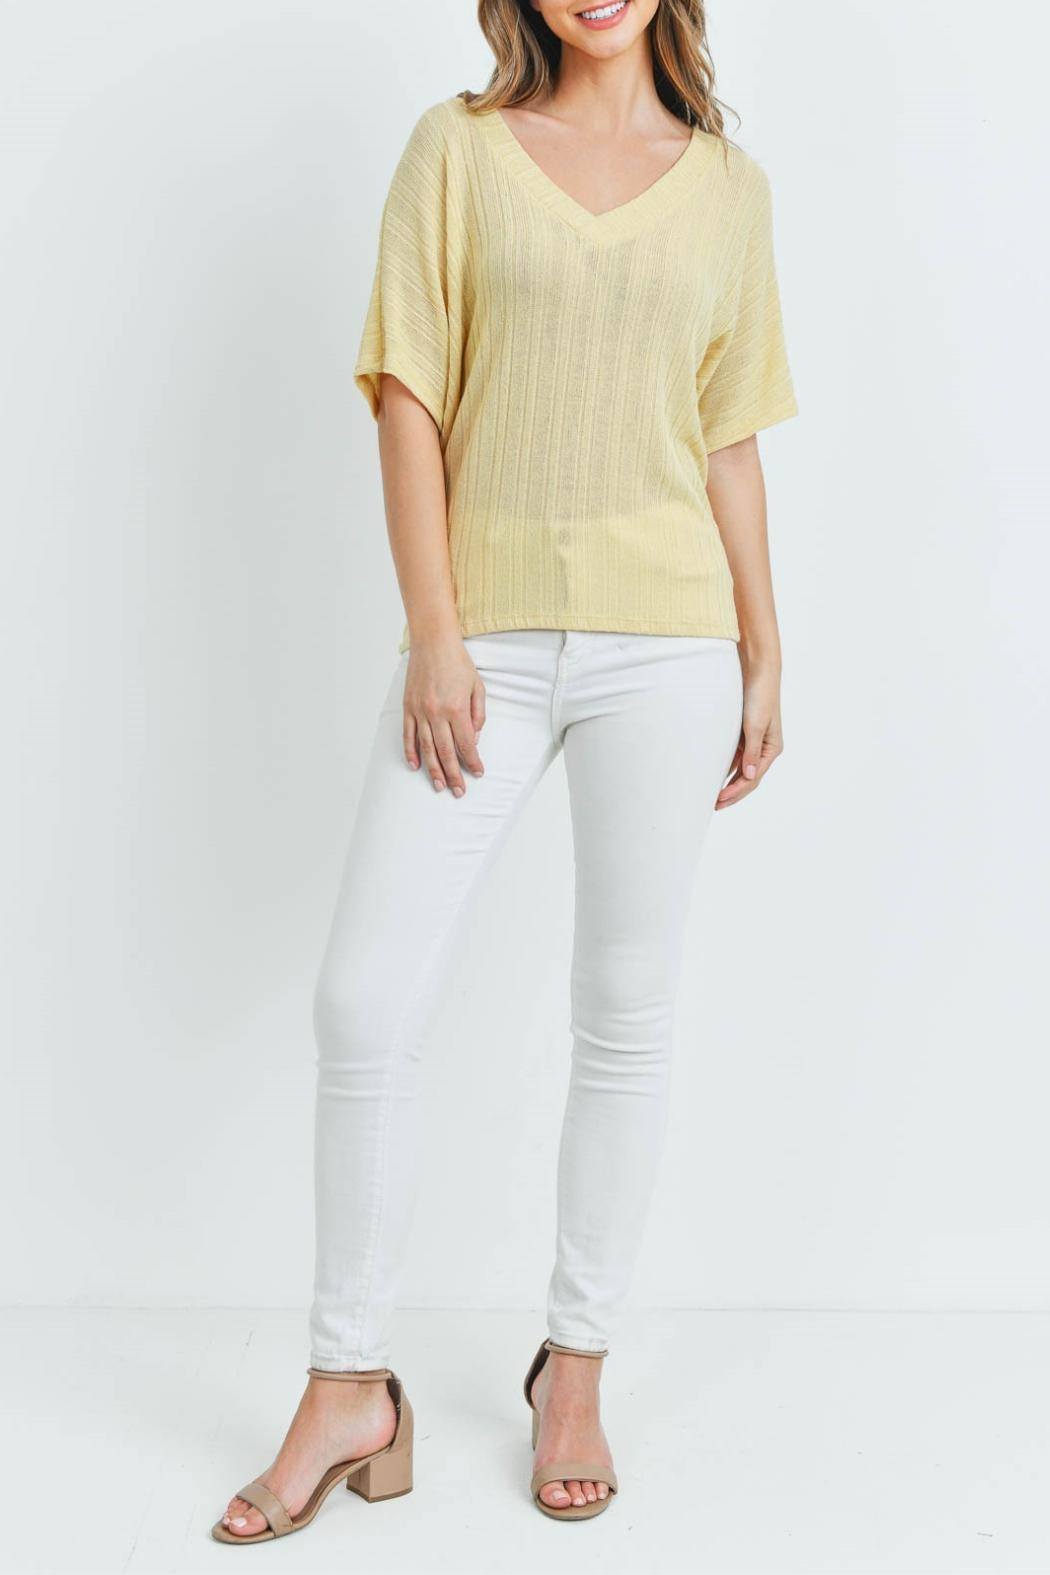 Ginger G Yellow Knit Top - Side Cropped Image